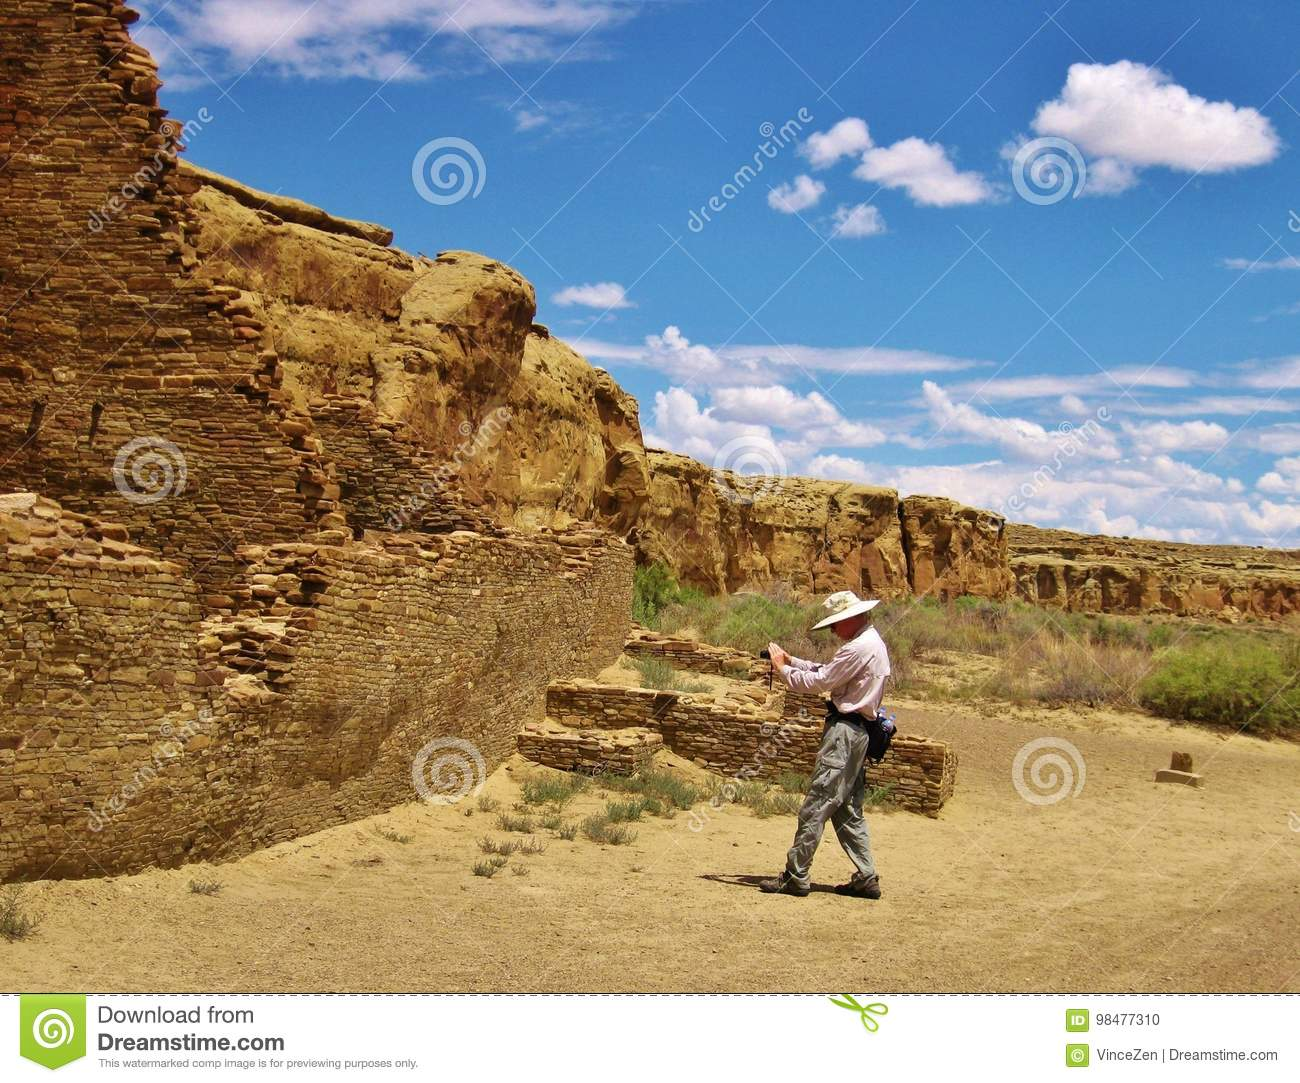 Travel writer and photographer at work in New Mexico desert